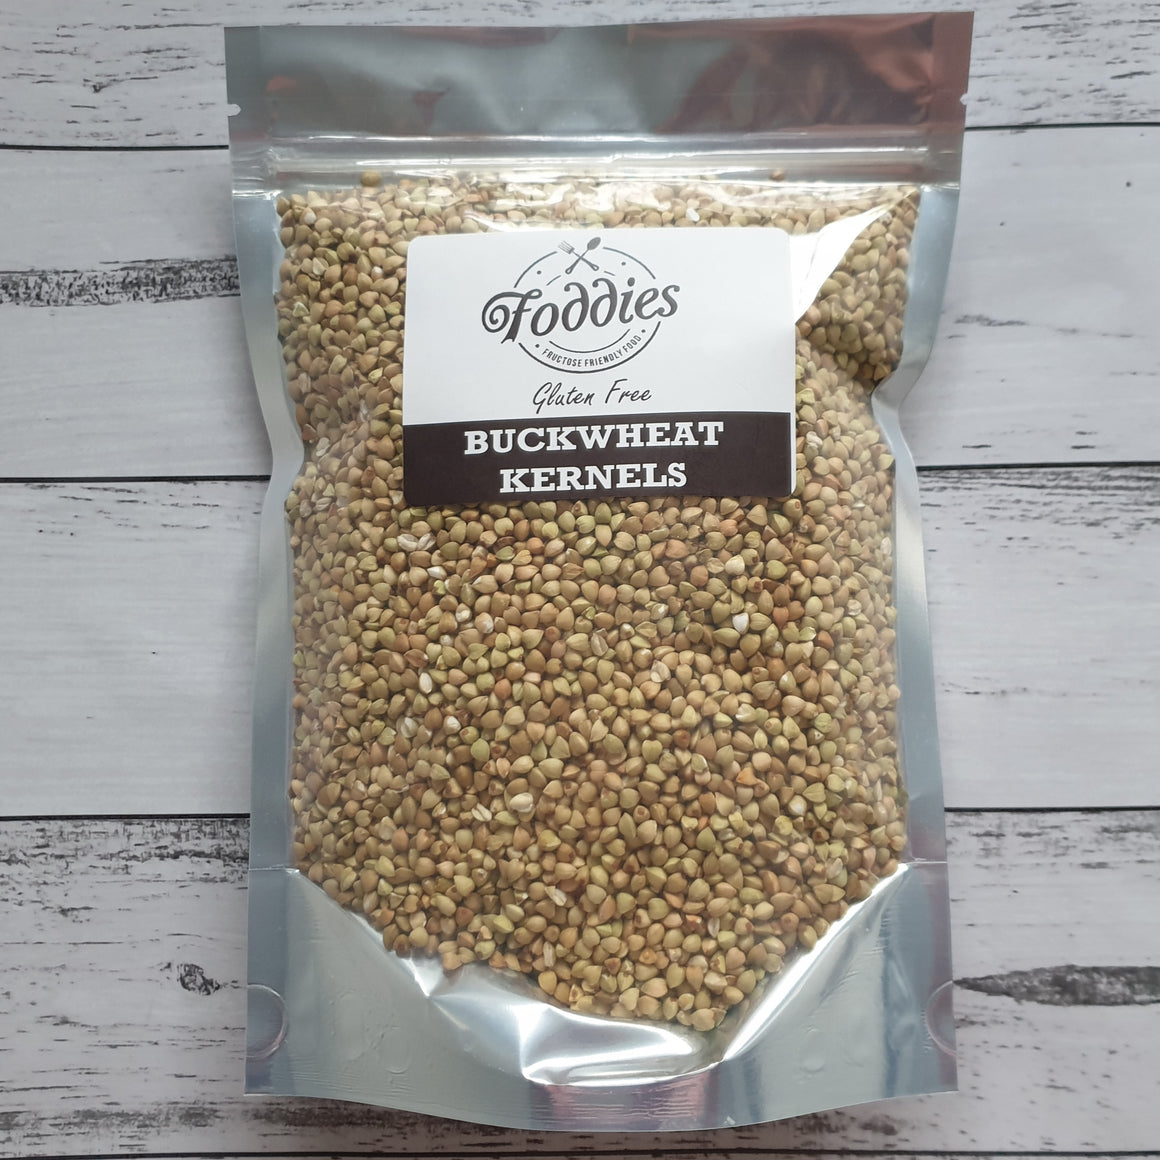 Buckwheat Kernels - Foddies Low FODMAP